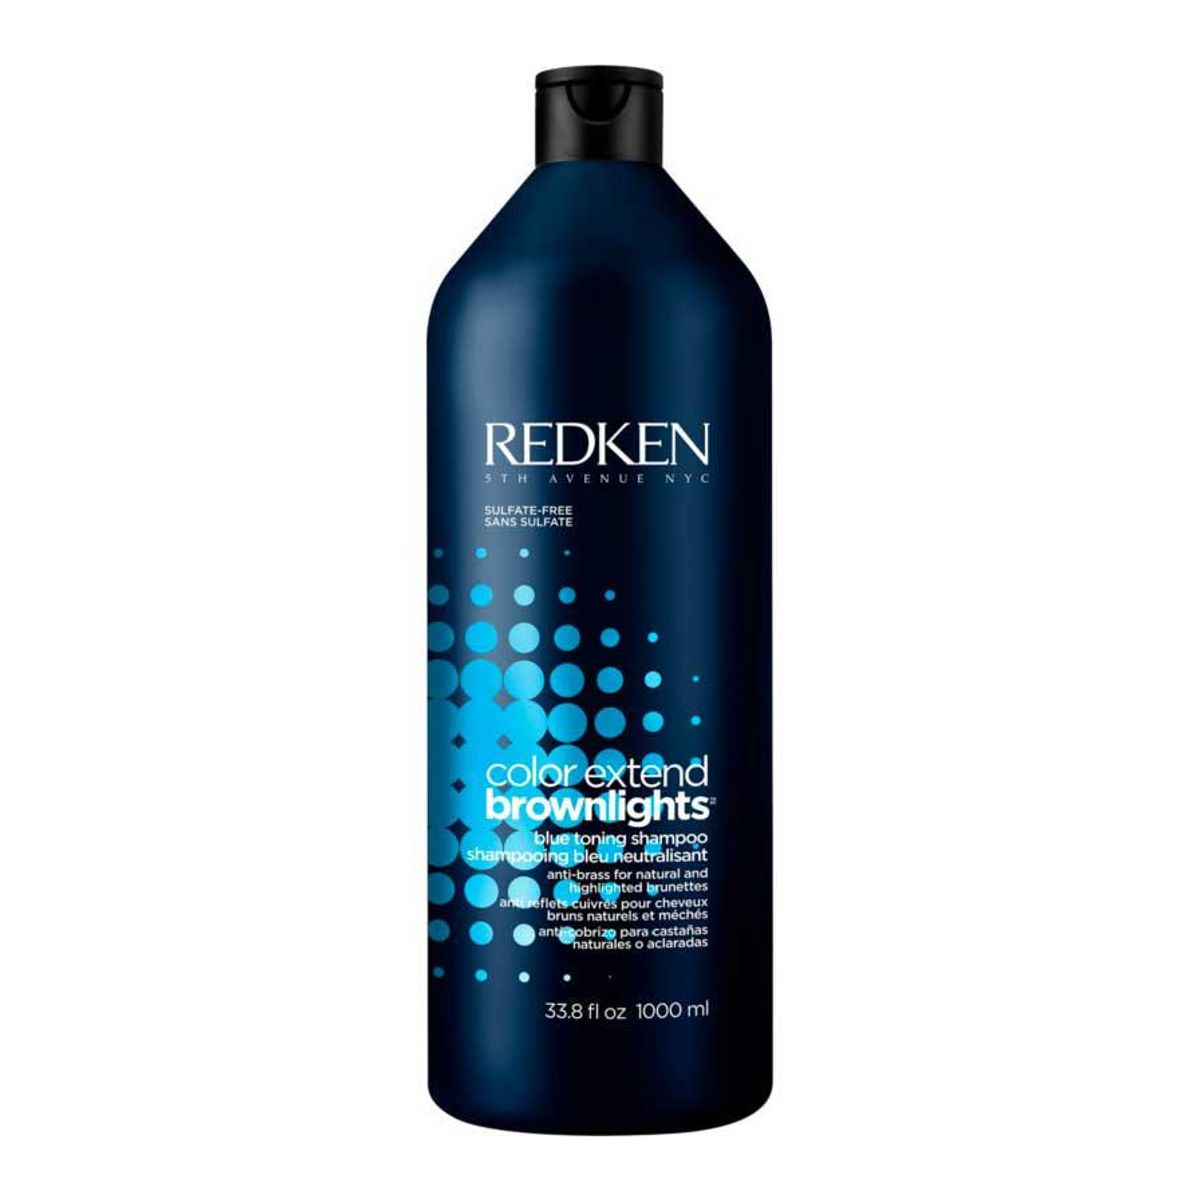 redken color extend brownlights blue toning sulfate free shampoo